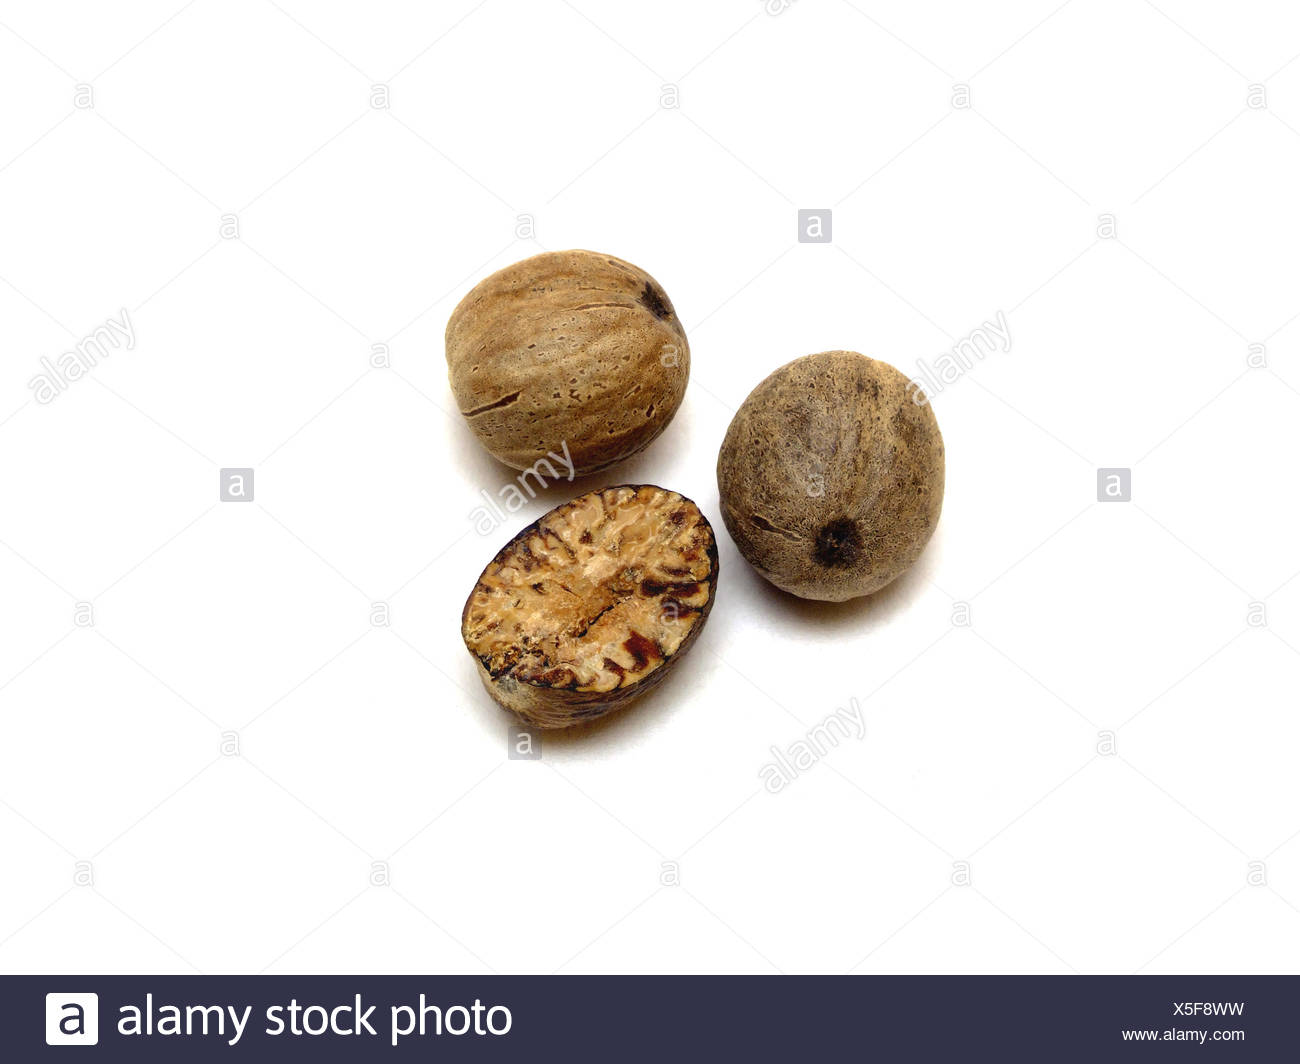 Muskat Nutmeg Myristica Fragrans Stock Photo Alamy